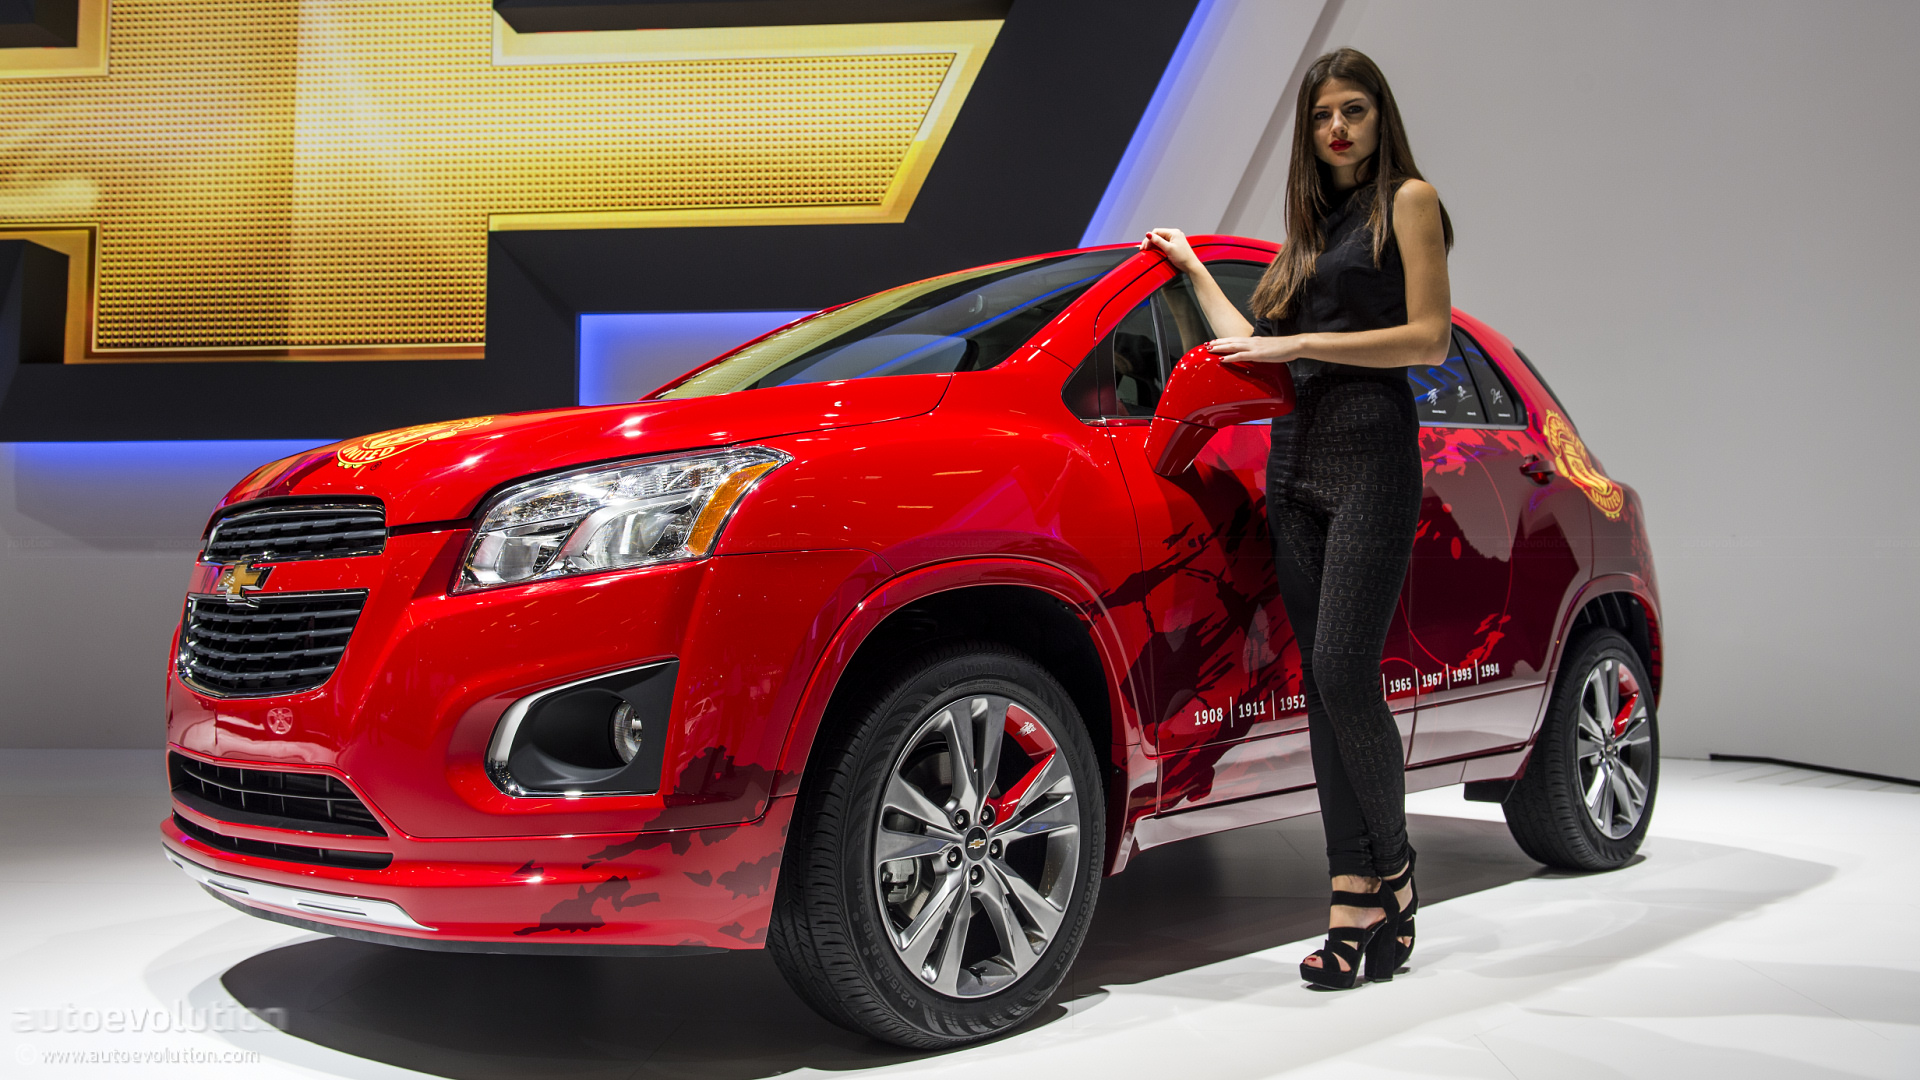 download Chevrolet Trax With Model Car Wallpapers